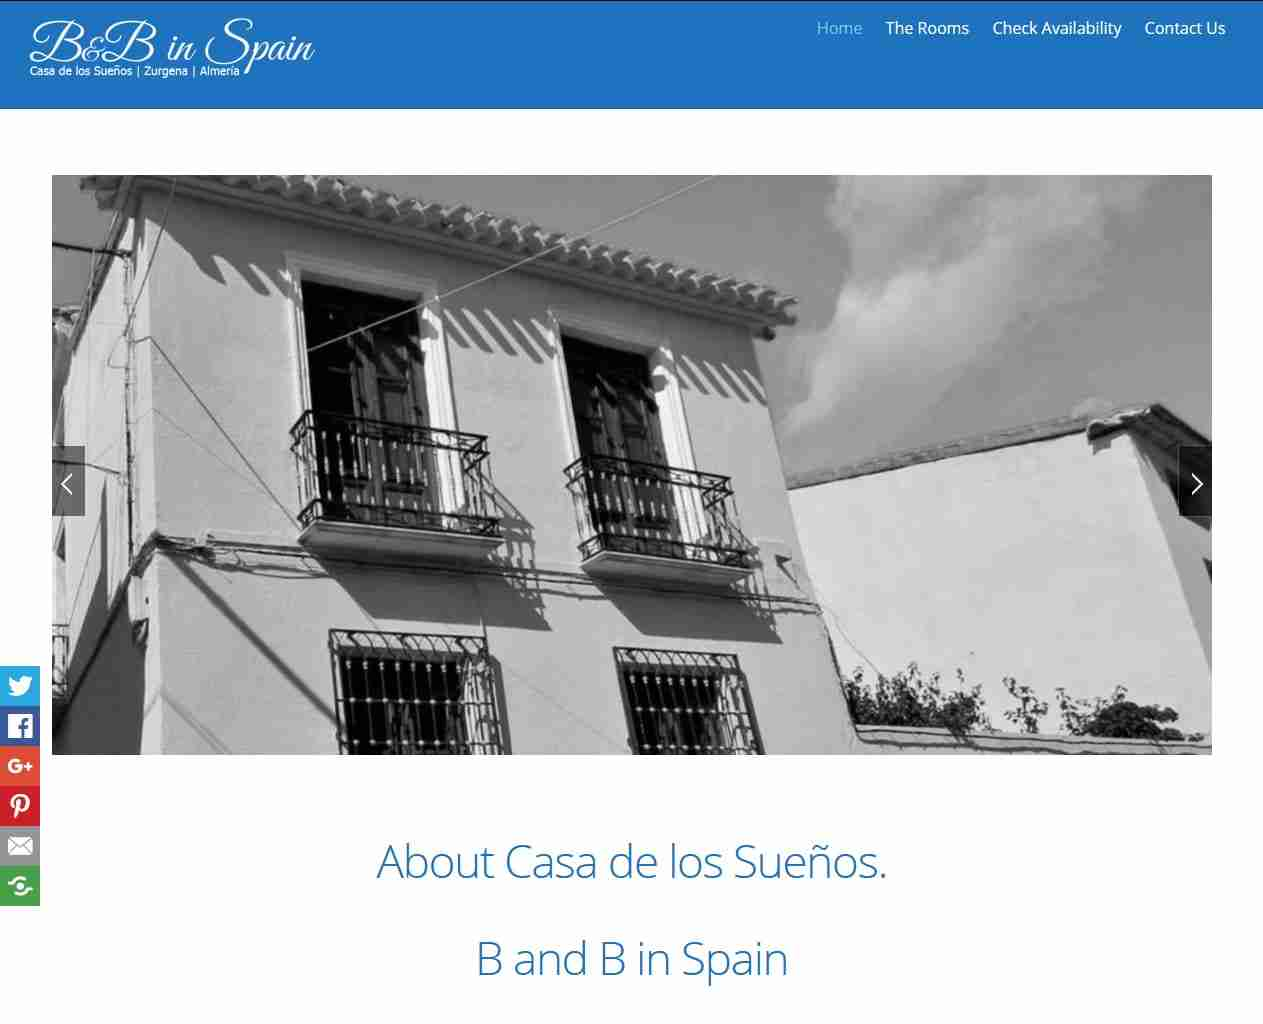 Spain Web Design and more by Gandy-Draper | Thank you!